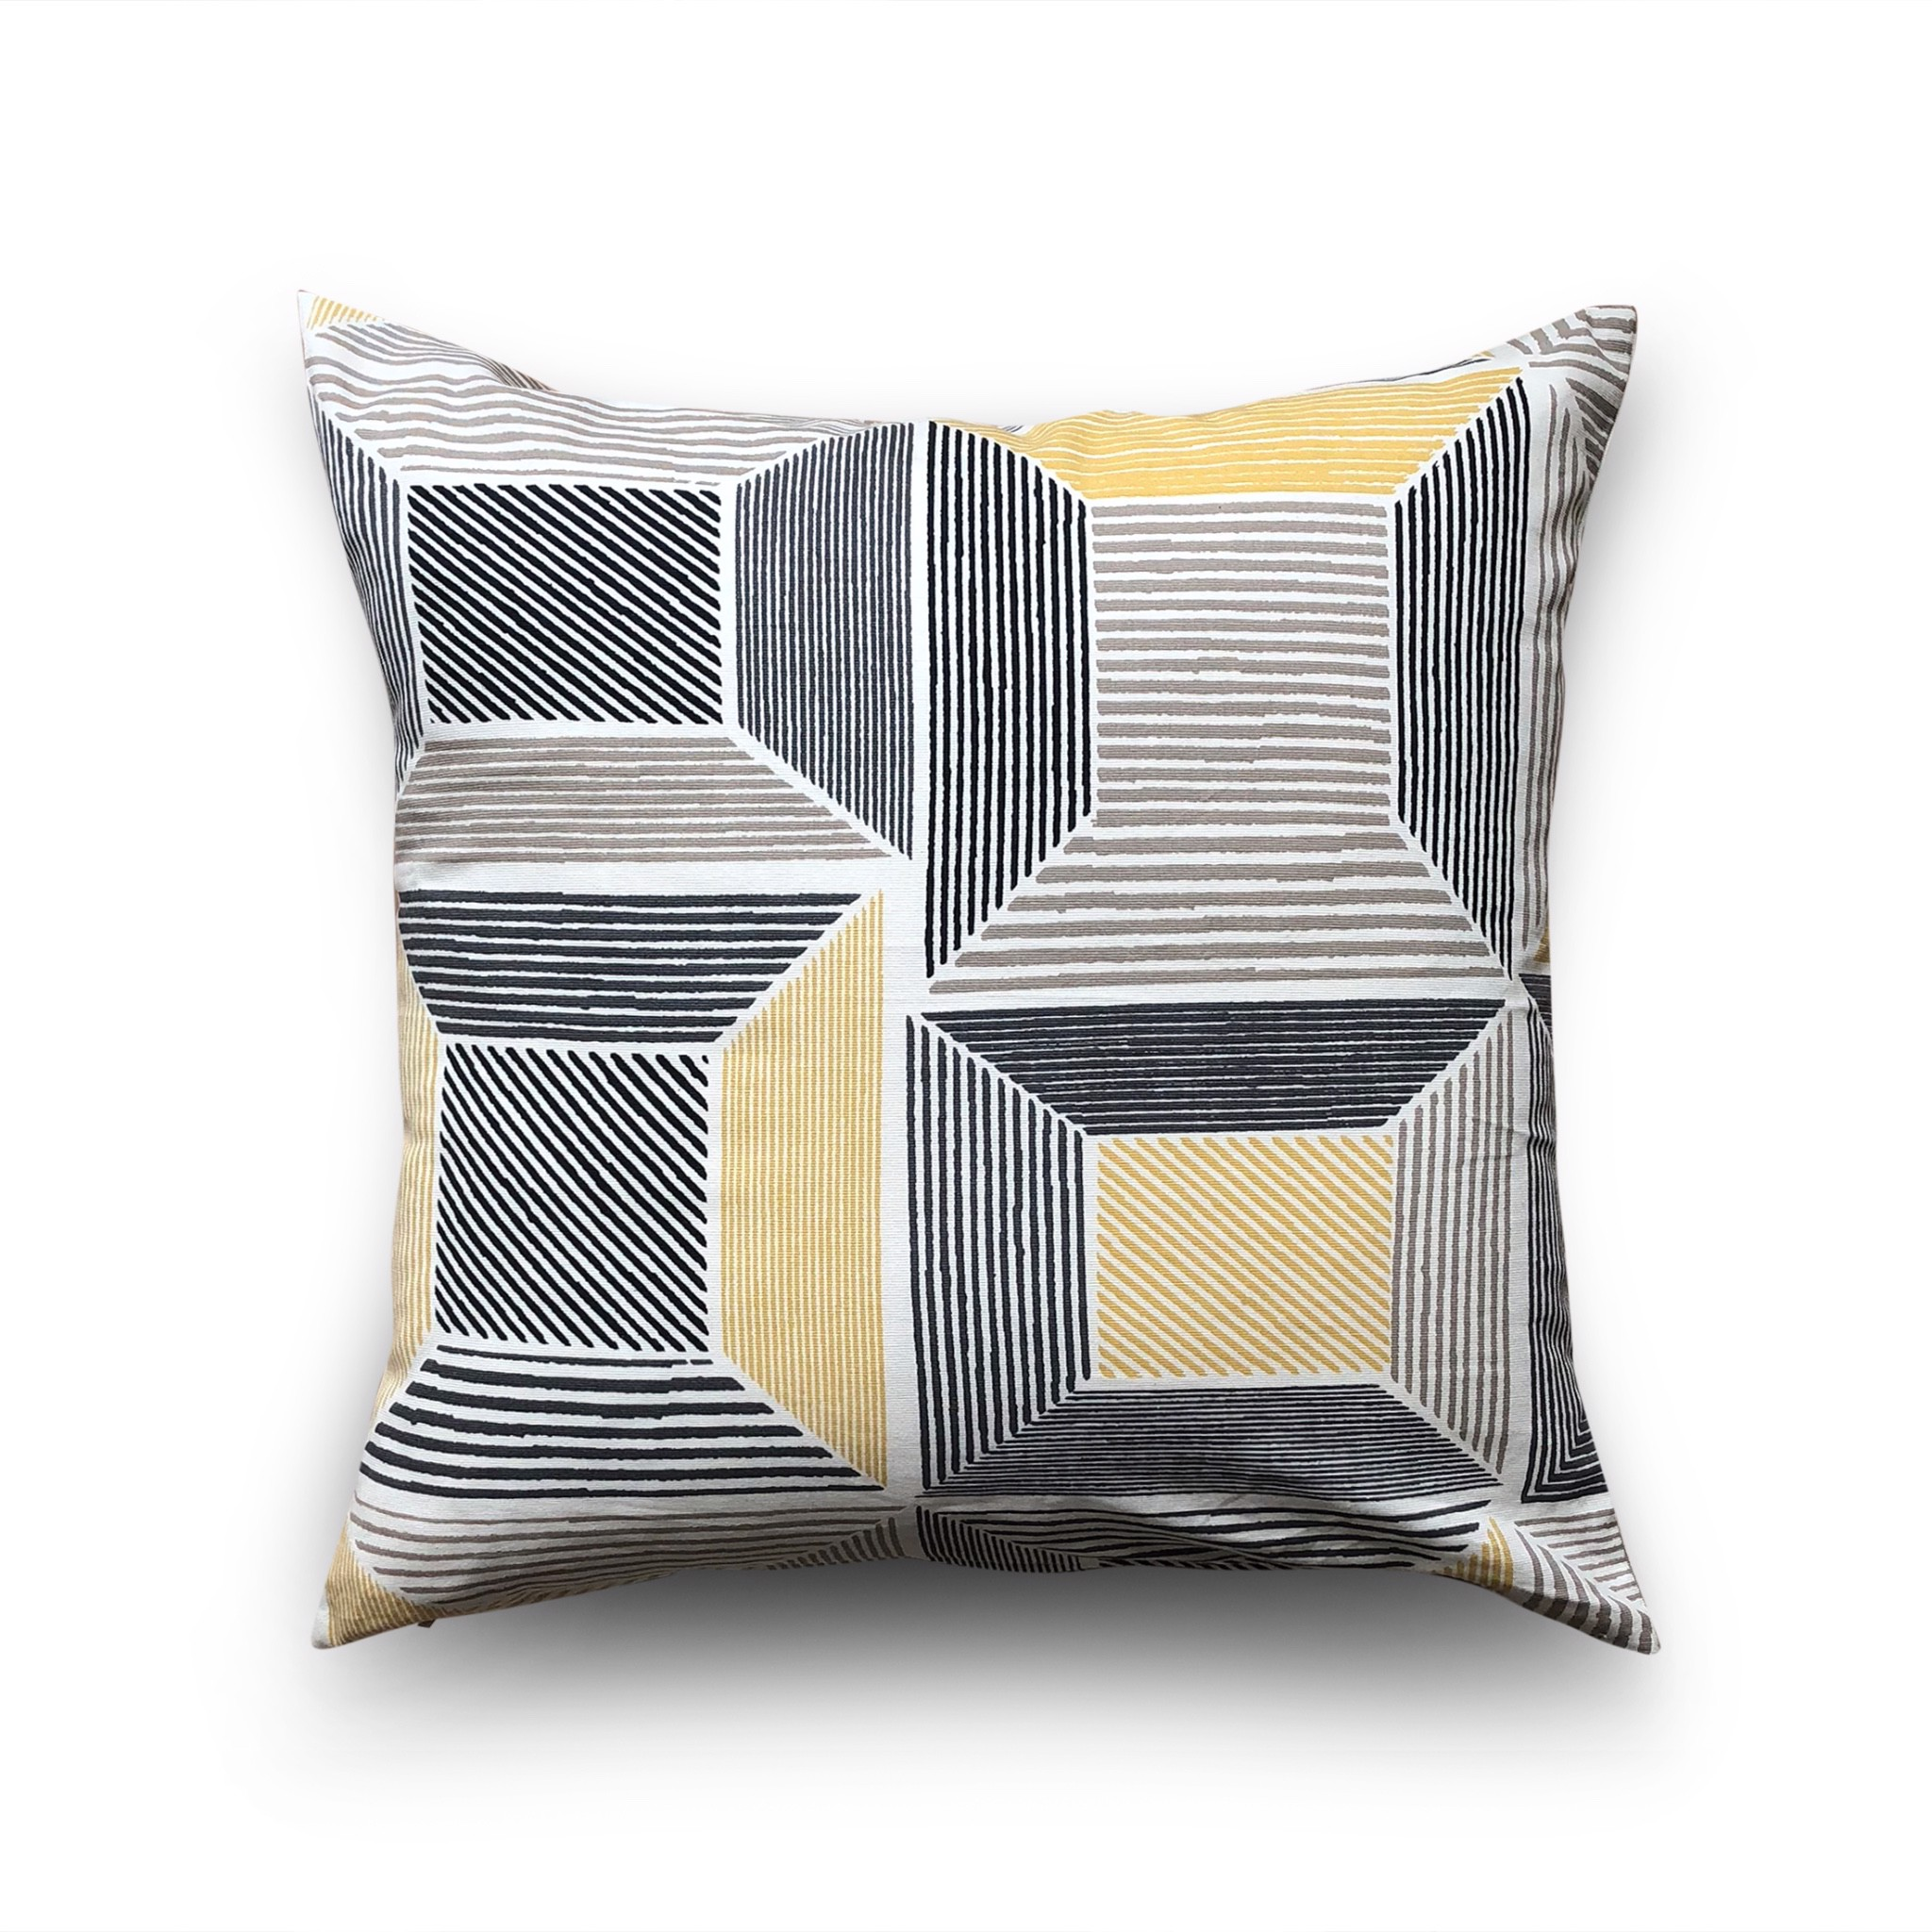 Cushion cover 68 Big yellow square